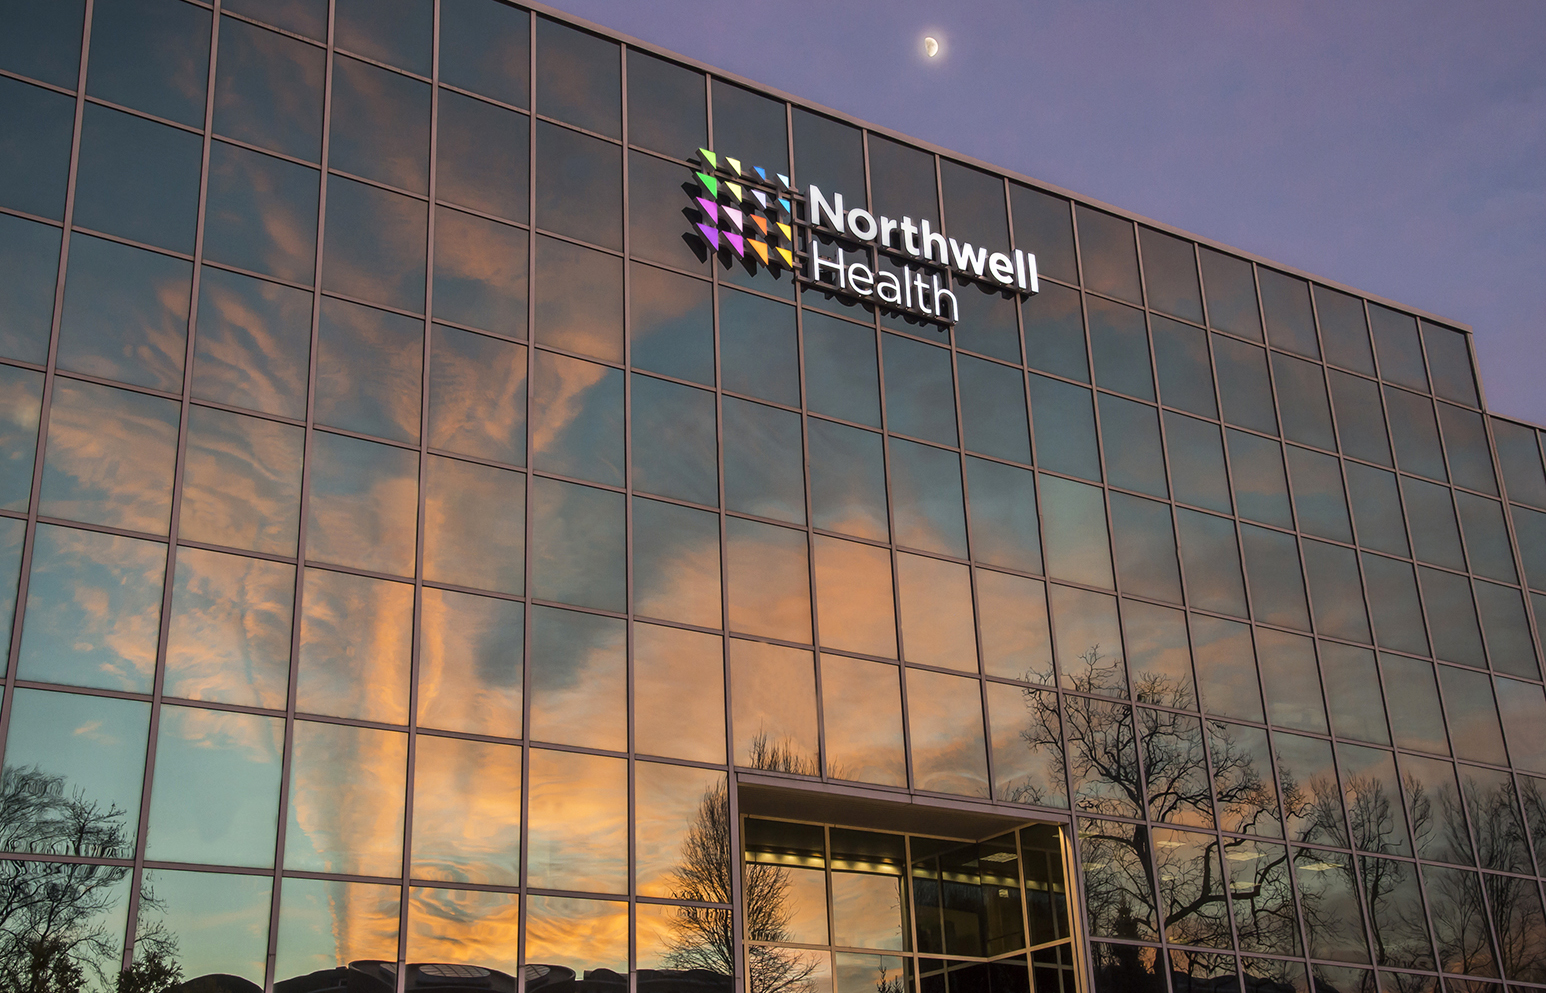 healthcarefinancenews.com - Northwell Direct leads and rides the trend of direct contracting in the self-insured market